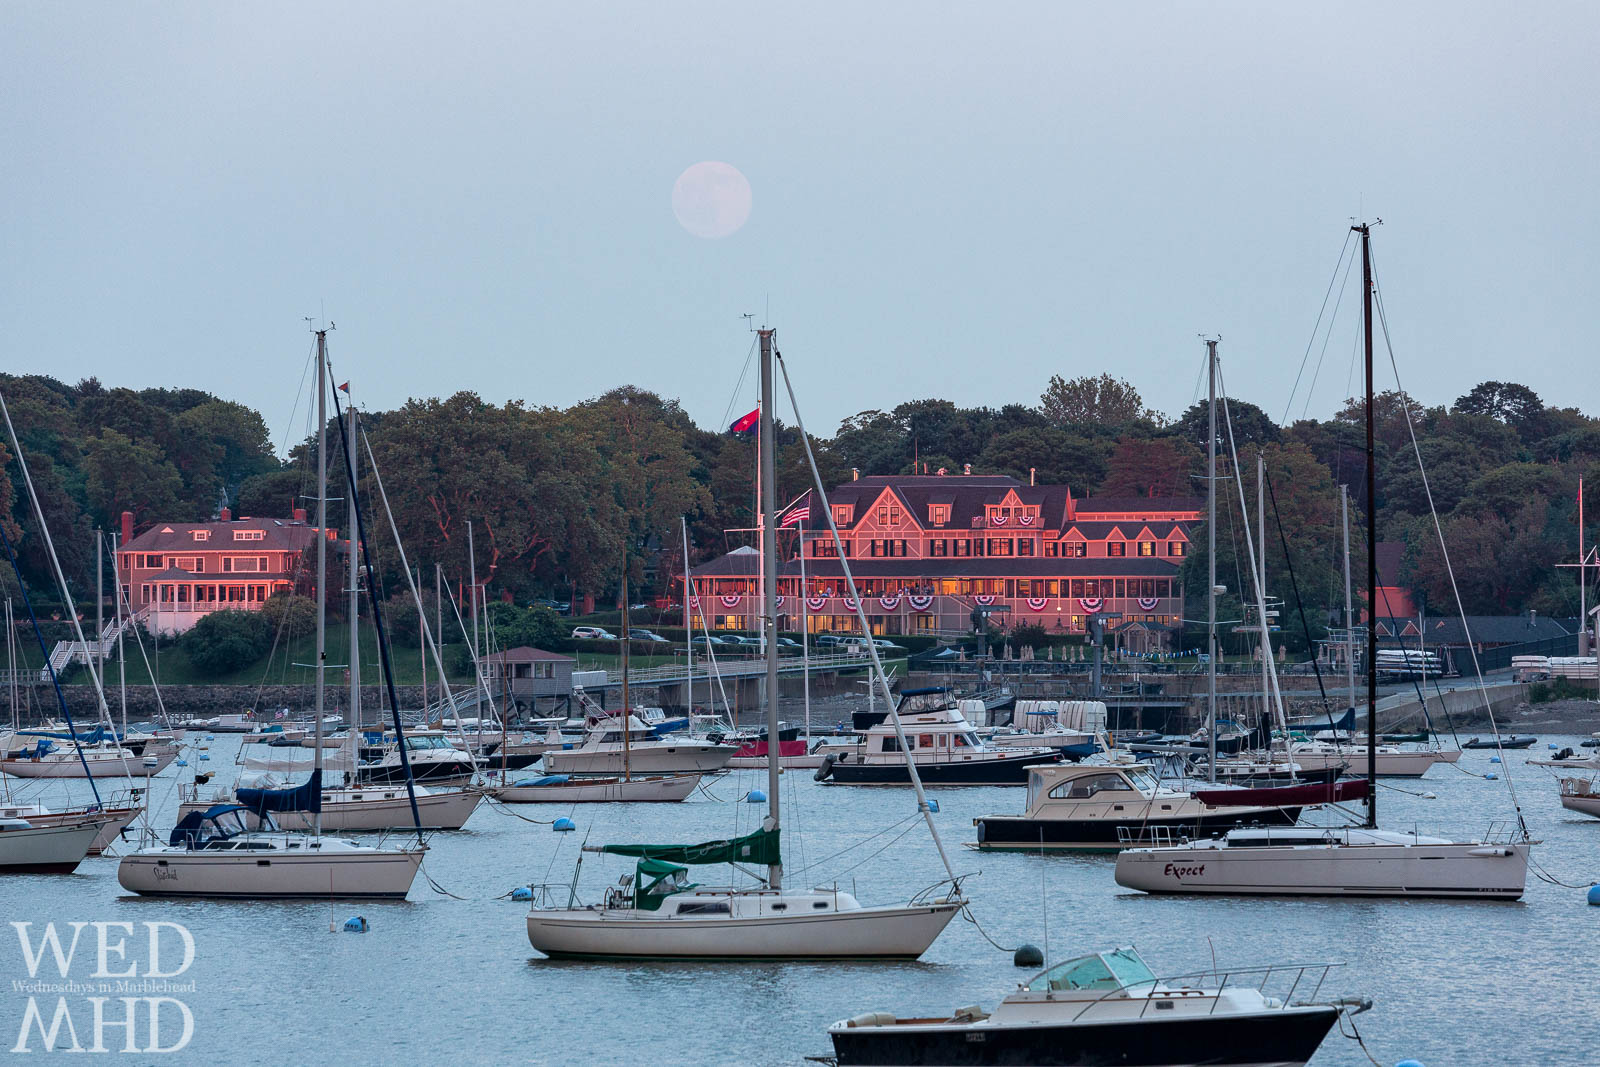 The Eastern Yacht Club glows red as the full moon rises overhead